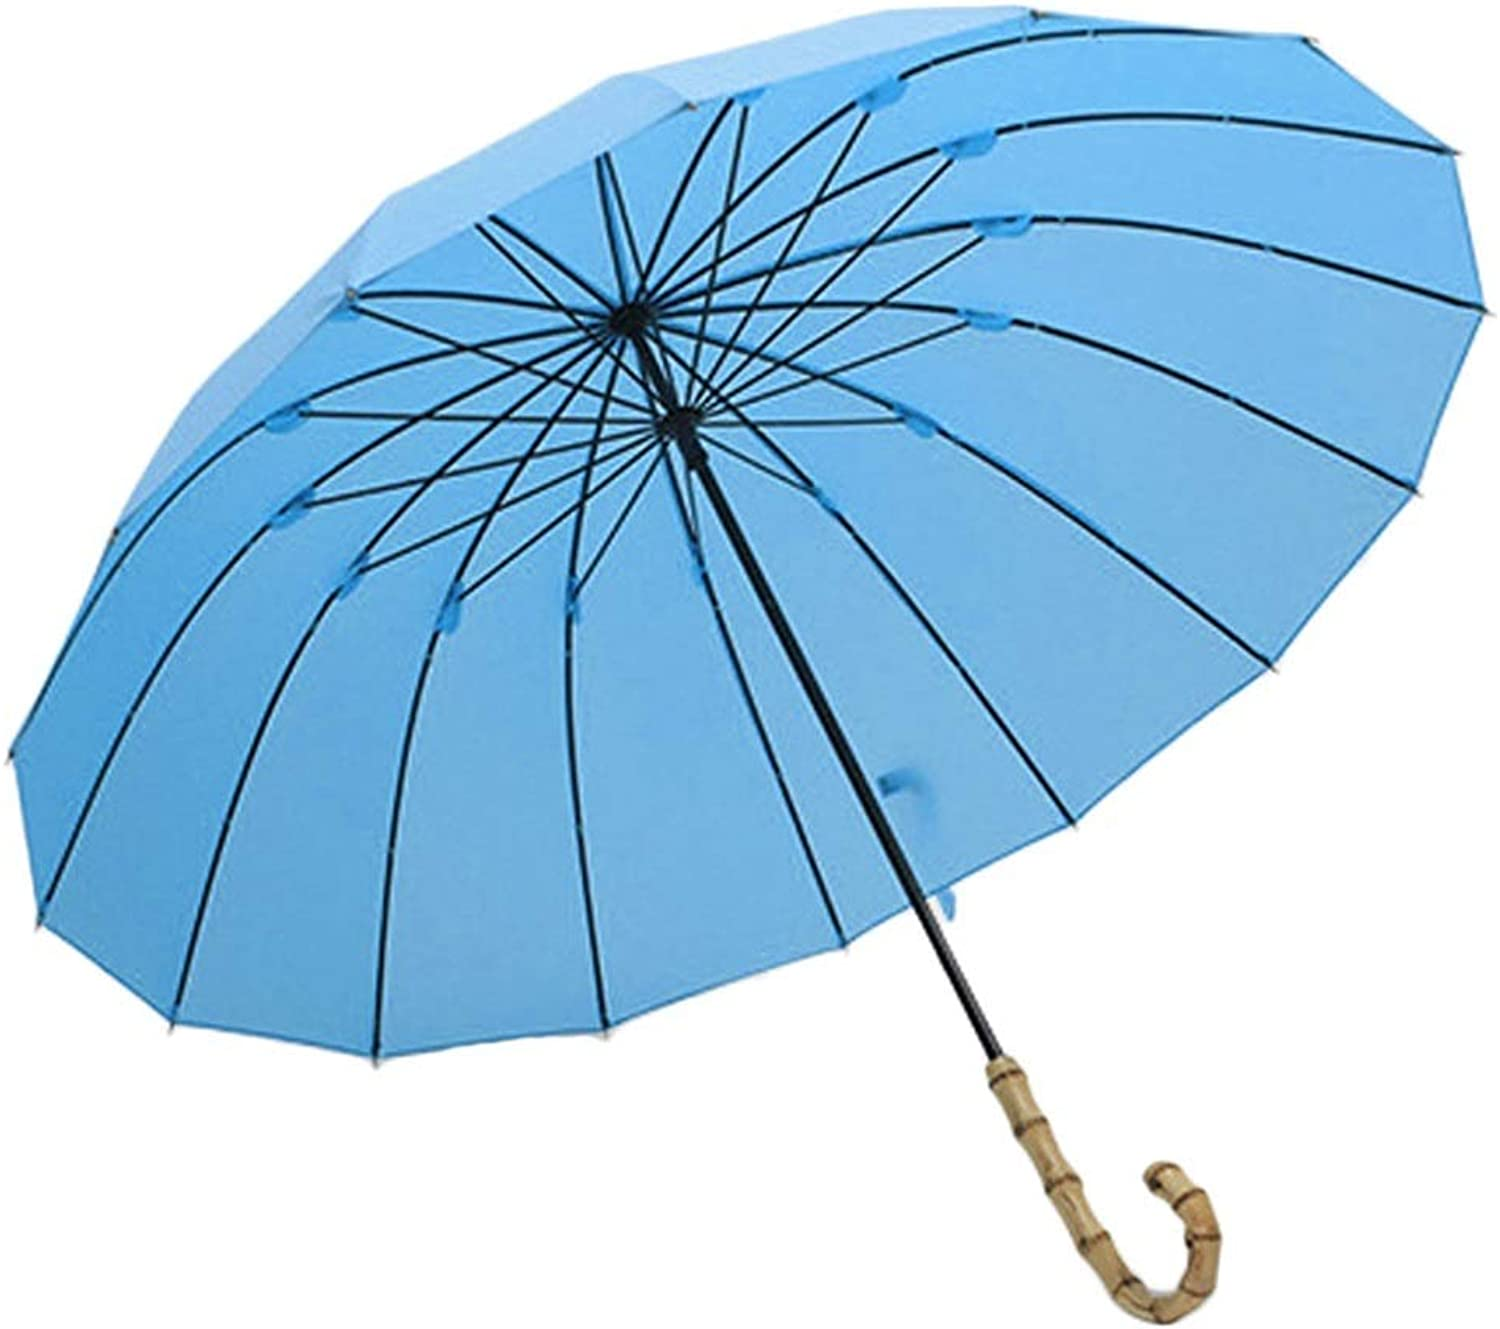 ZHUSAN Long Umbrella, Wood Handle Lightweight Manually Simple Style with 16 Ribs